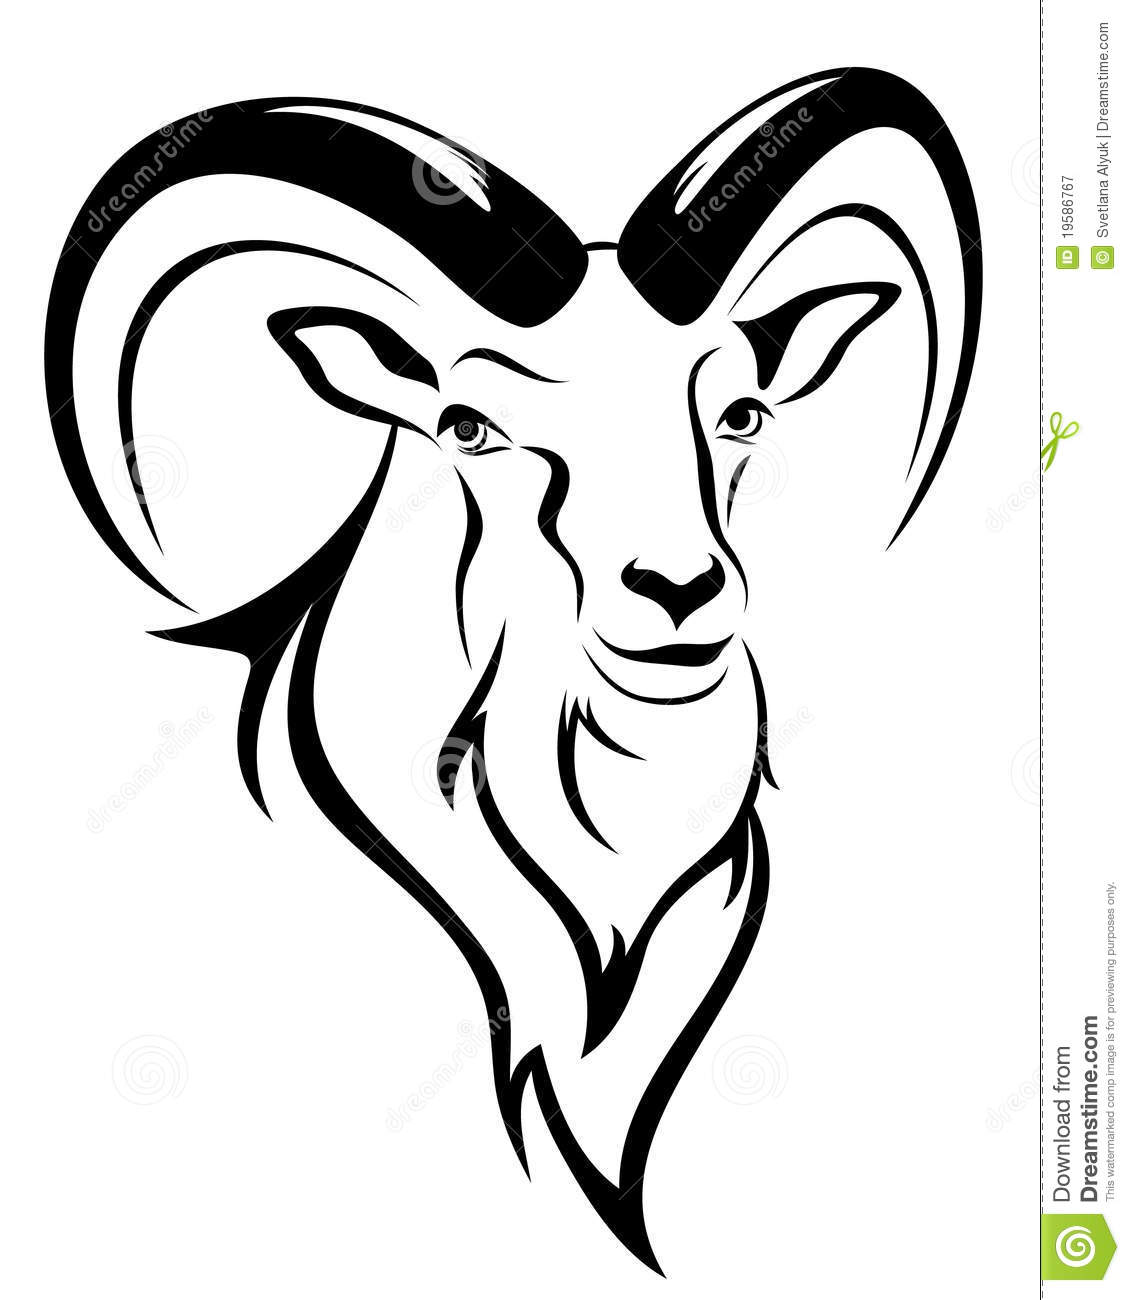 Goat Vector Royalty Free Stock Photography Image 19586767